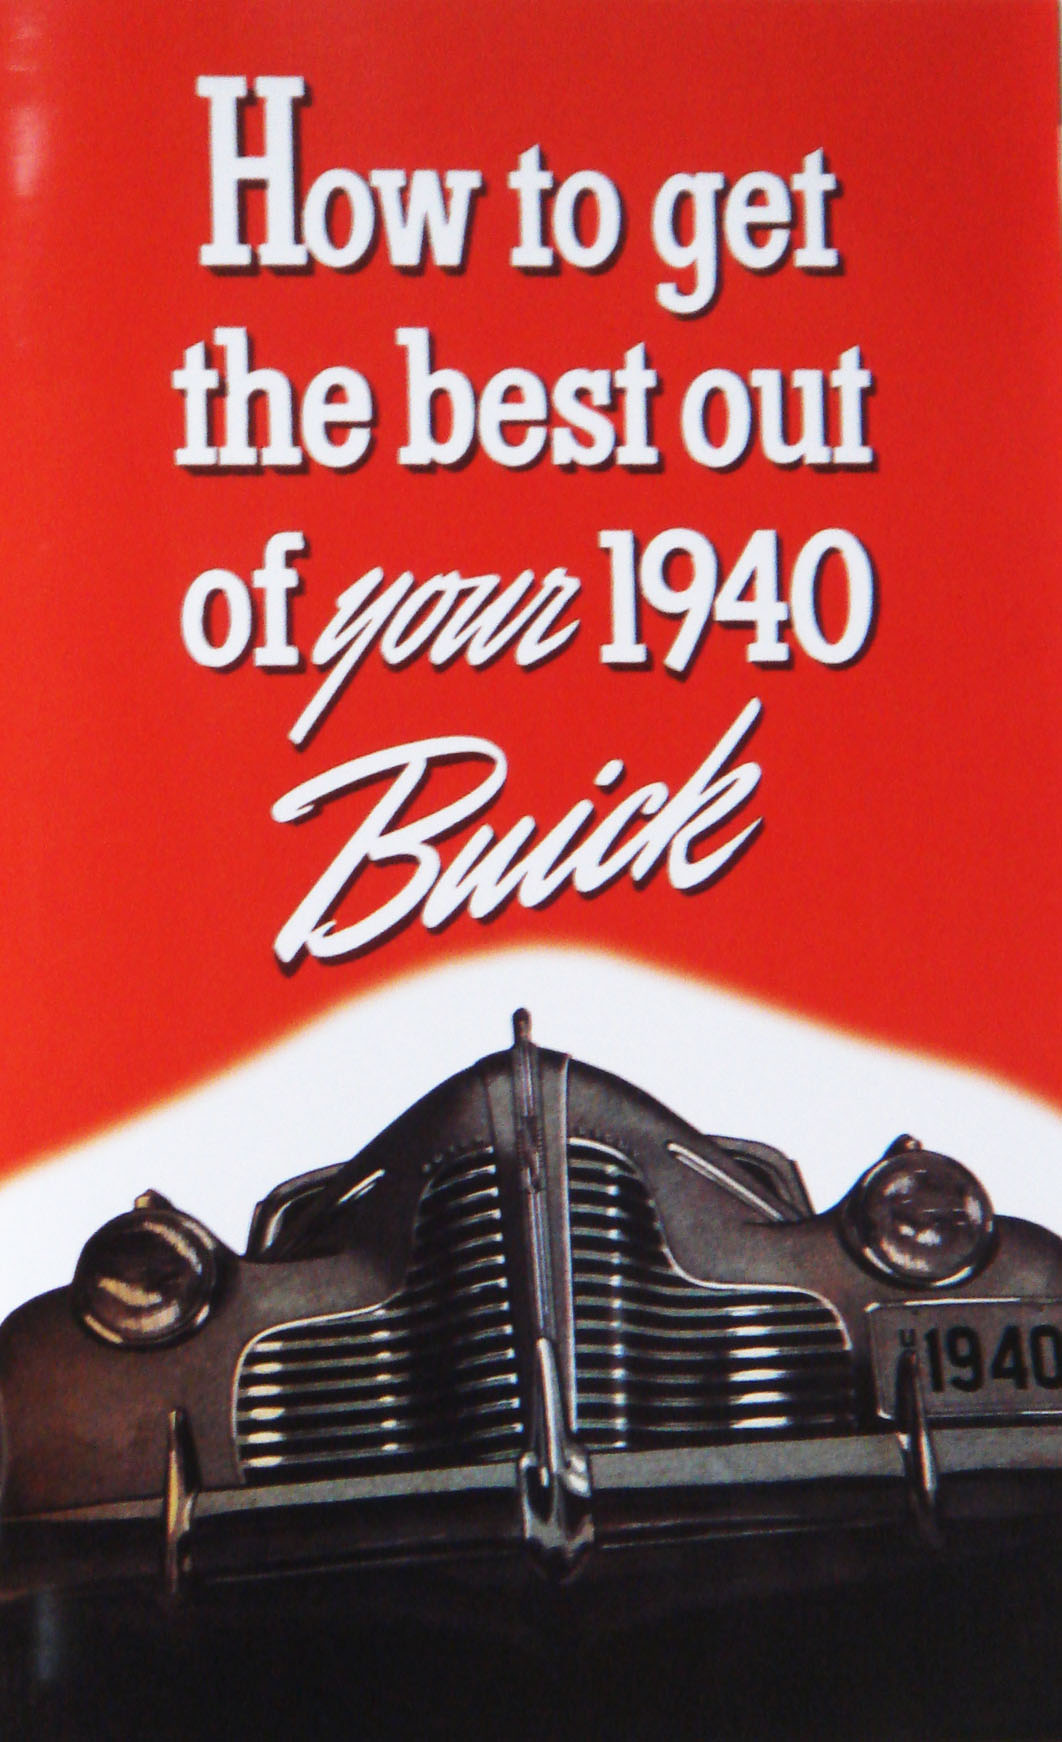 1940 Buick Owners Manual